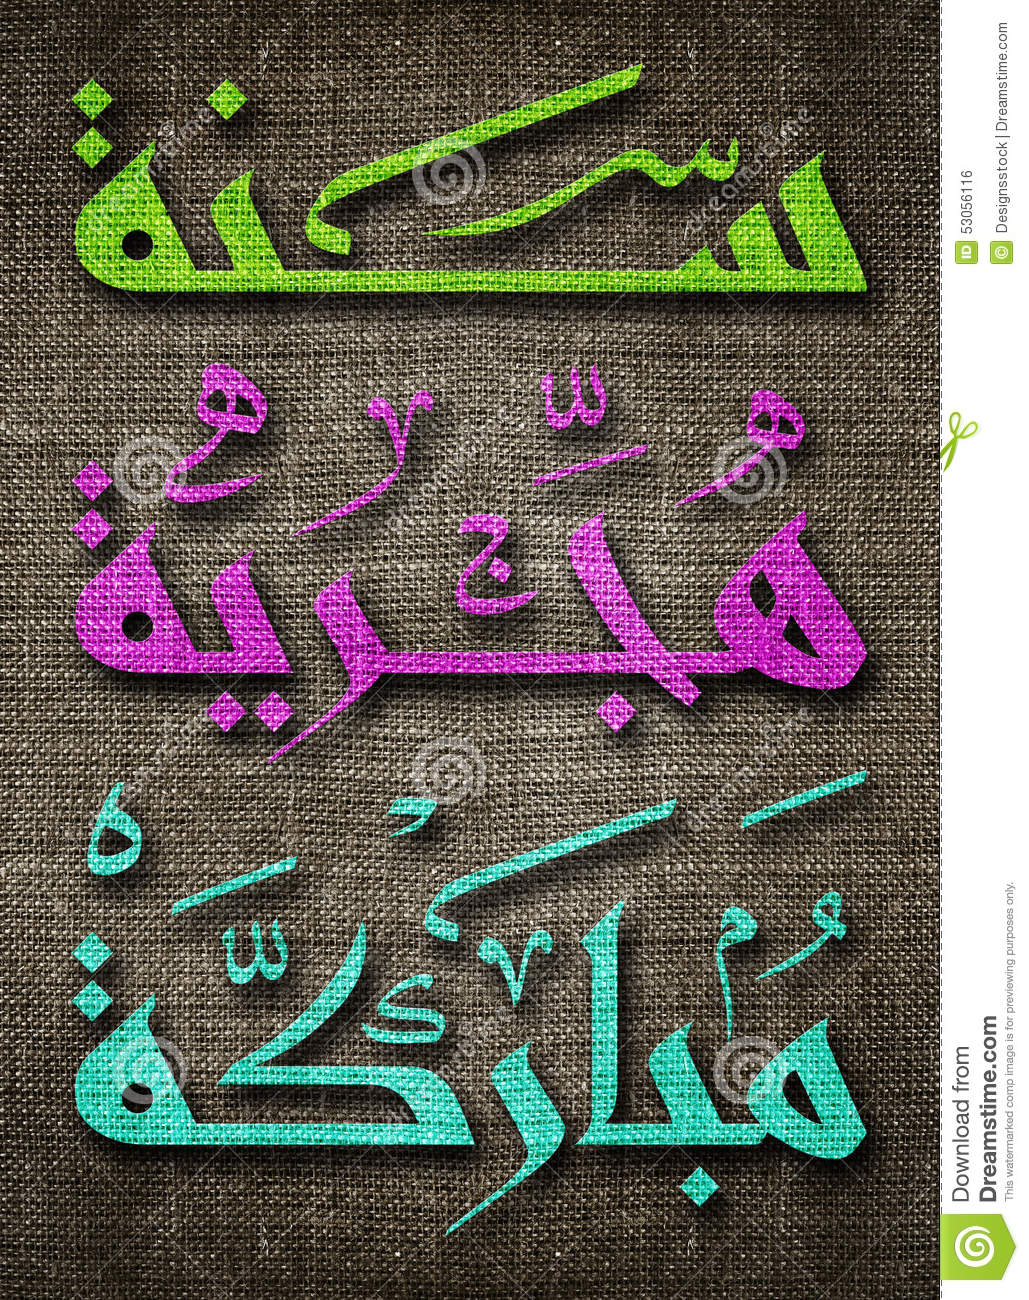 Islamic new year greeting card stock illustration illustration of islamic hijri new year greeting card with arabic calligraphy of text wishing you a blessed new year m4hsunfo